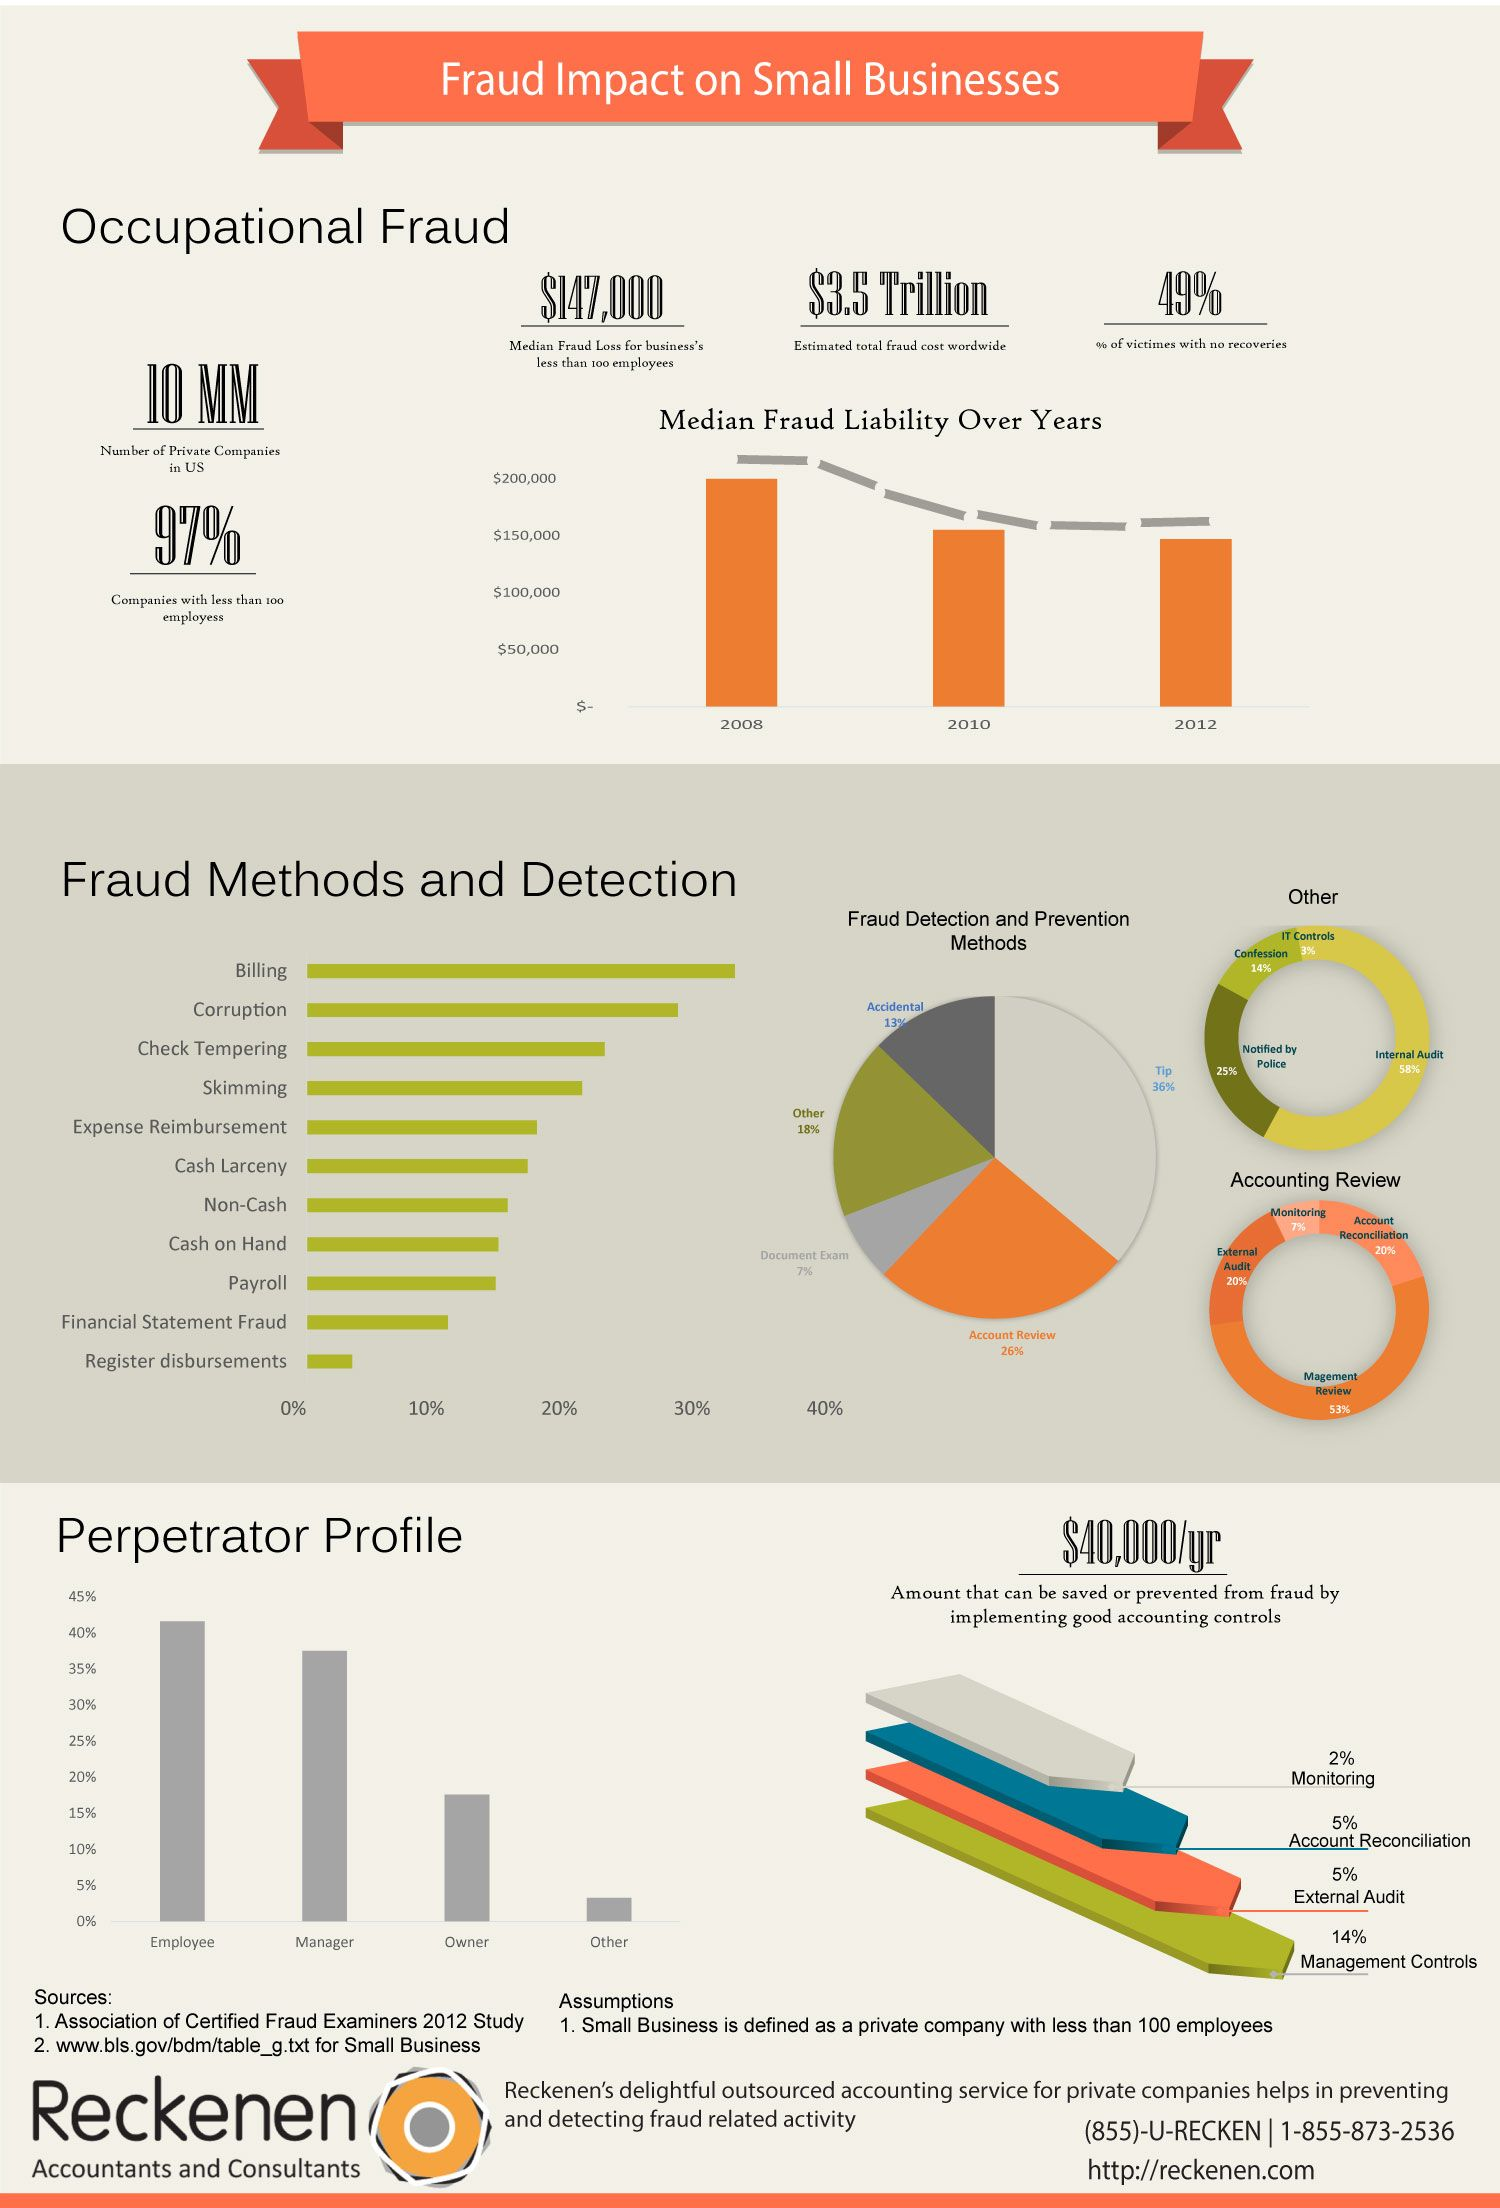 Accounting Audits And Controls Help In Detecting Fraud 26